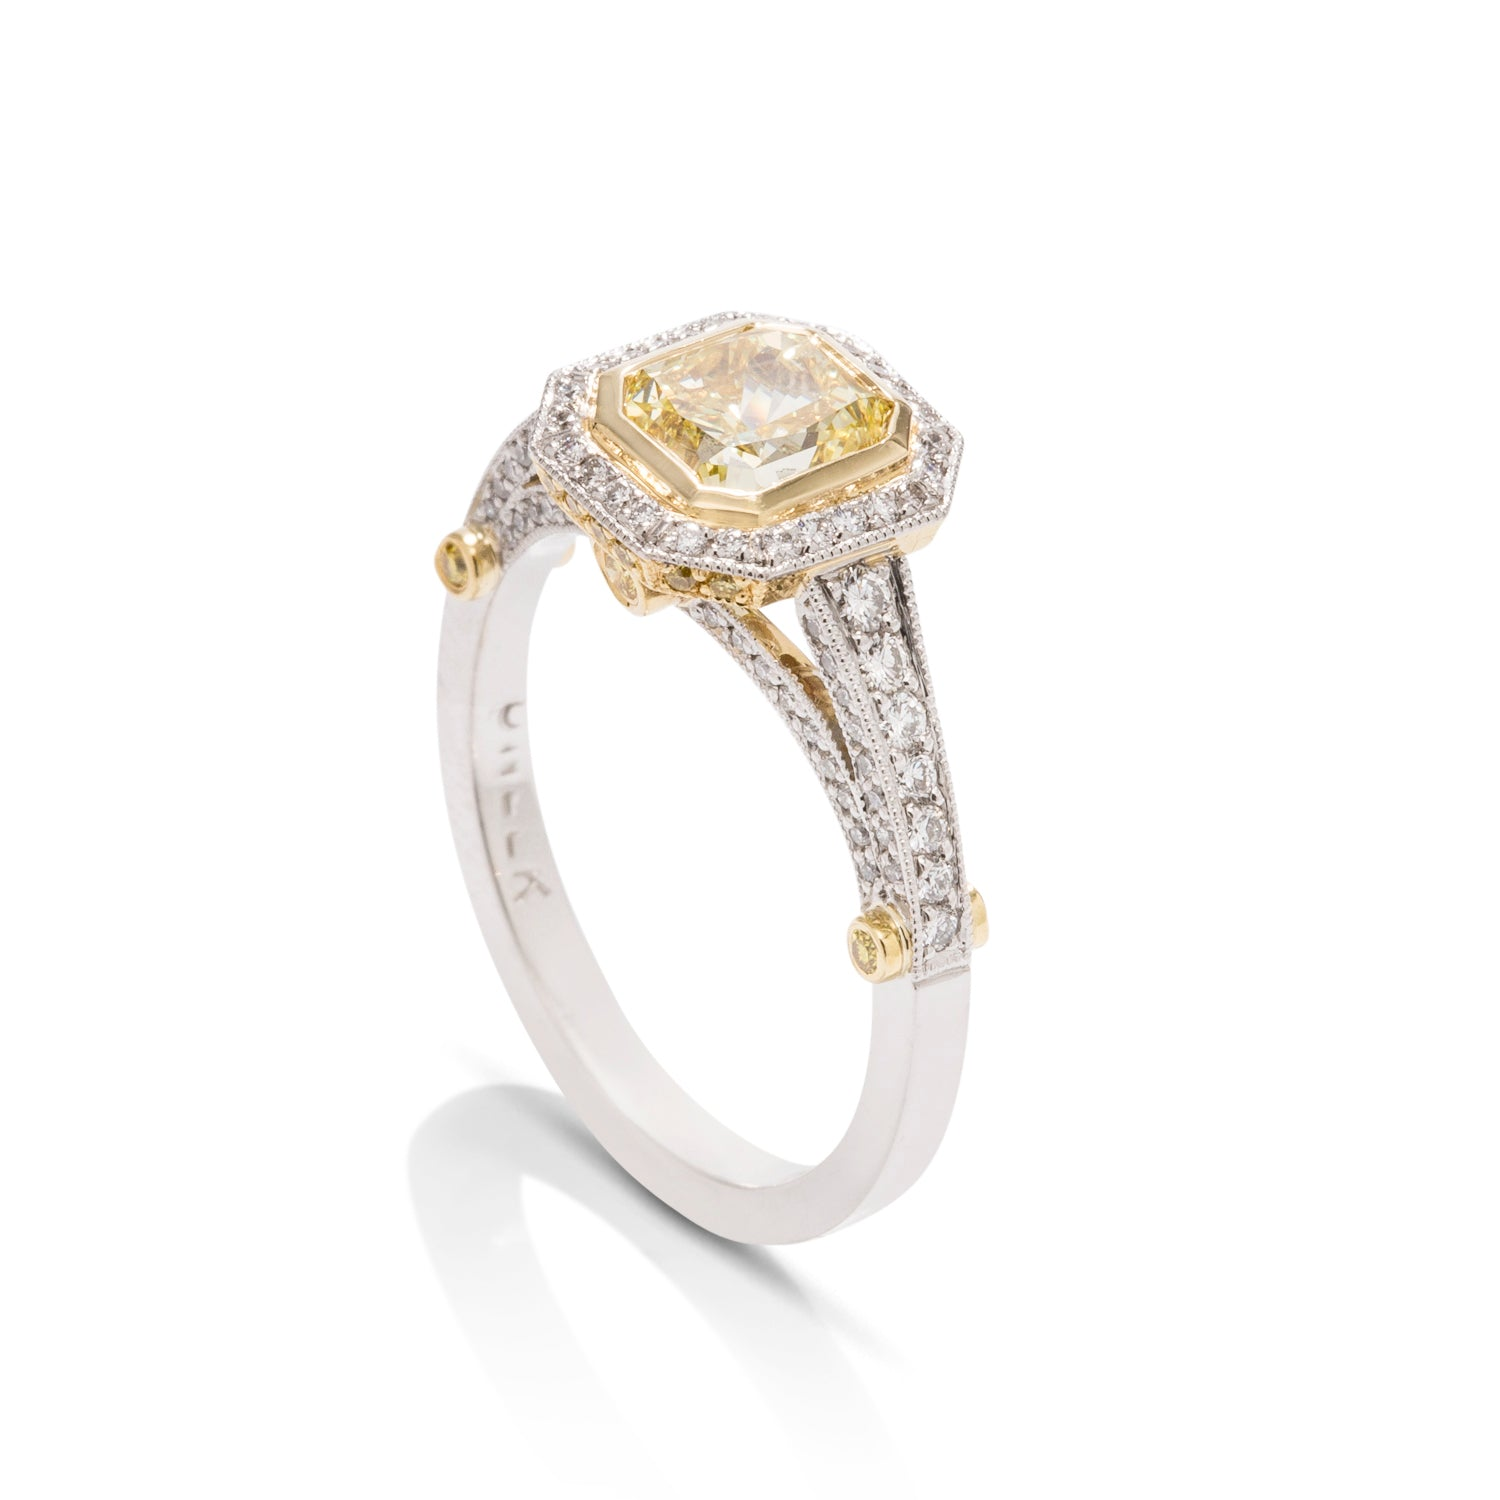 Fancy Yellow Radiant Diamond Engagement Ring - Charles Koll Jewellers